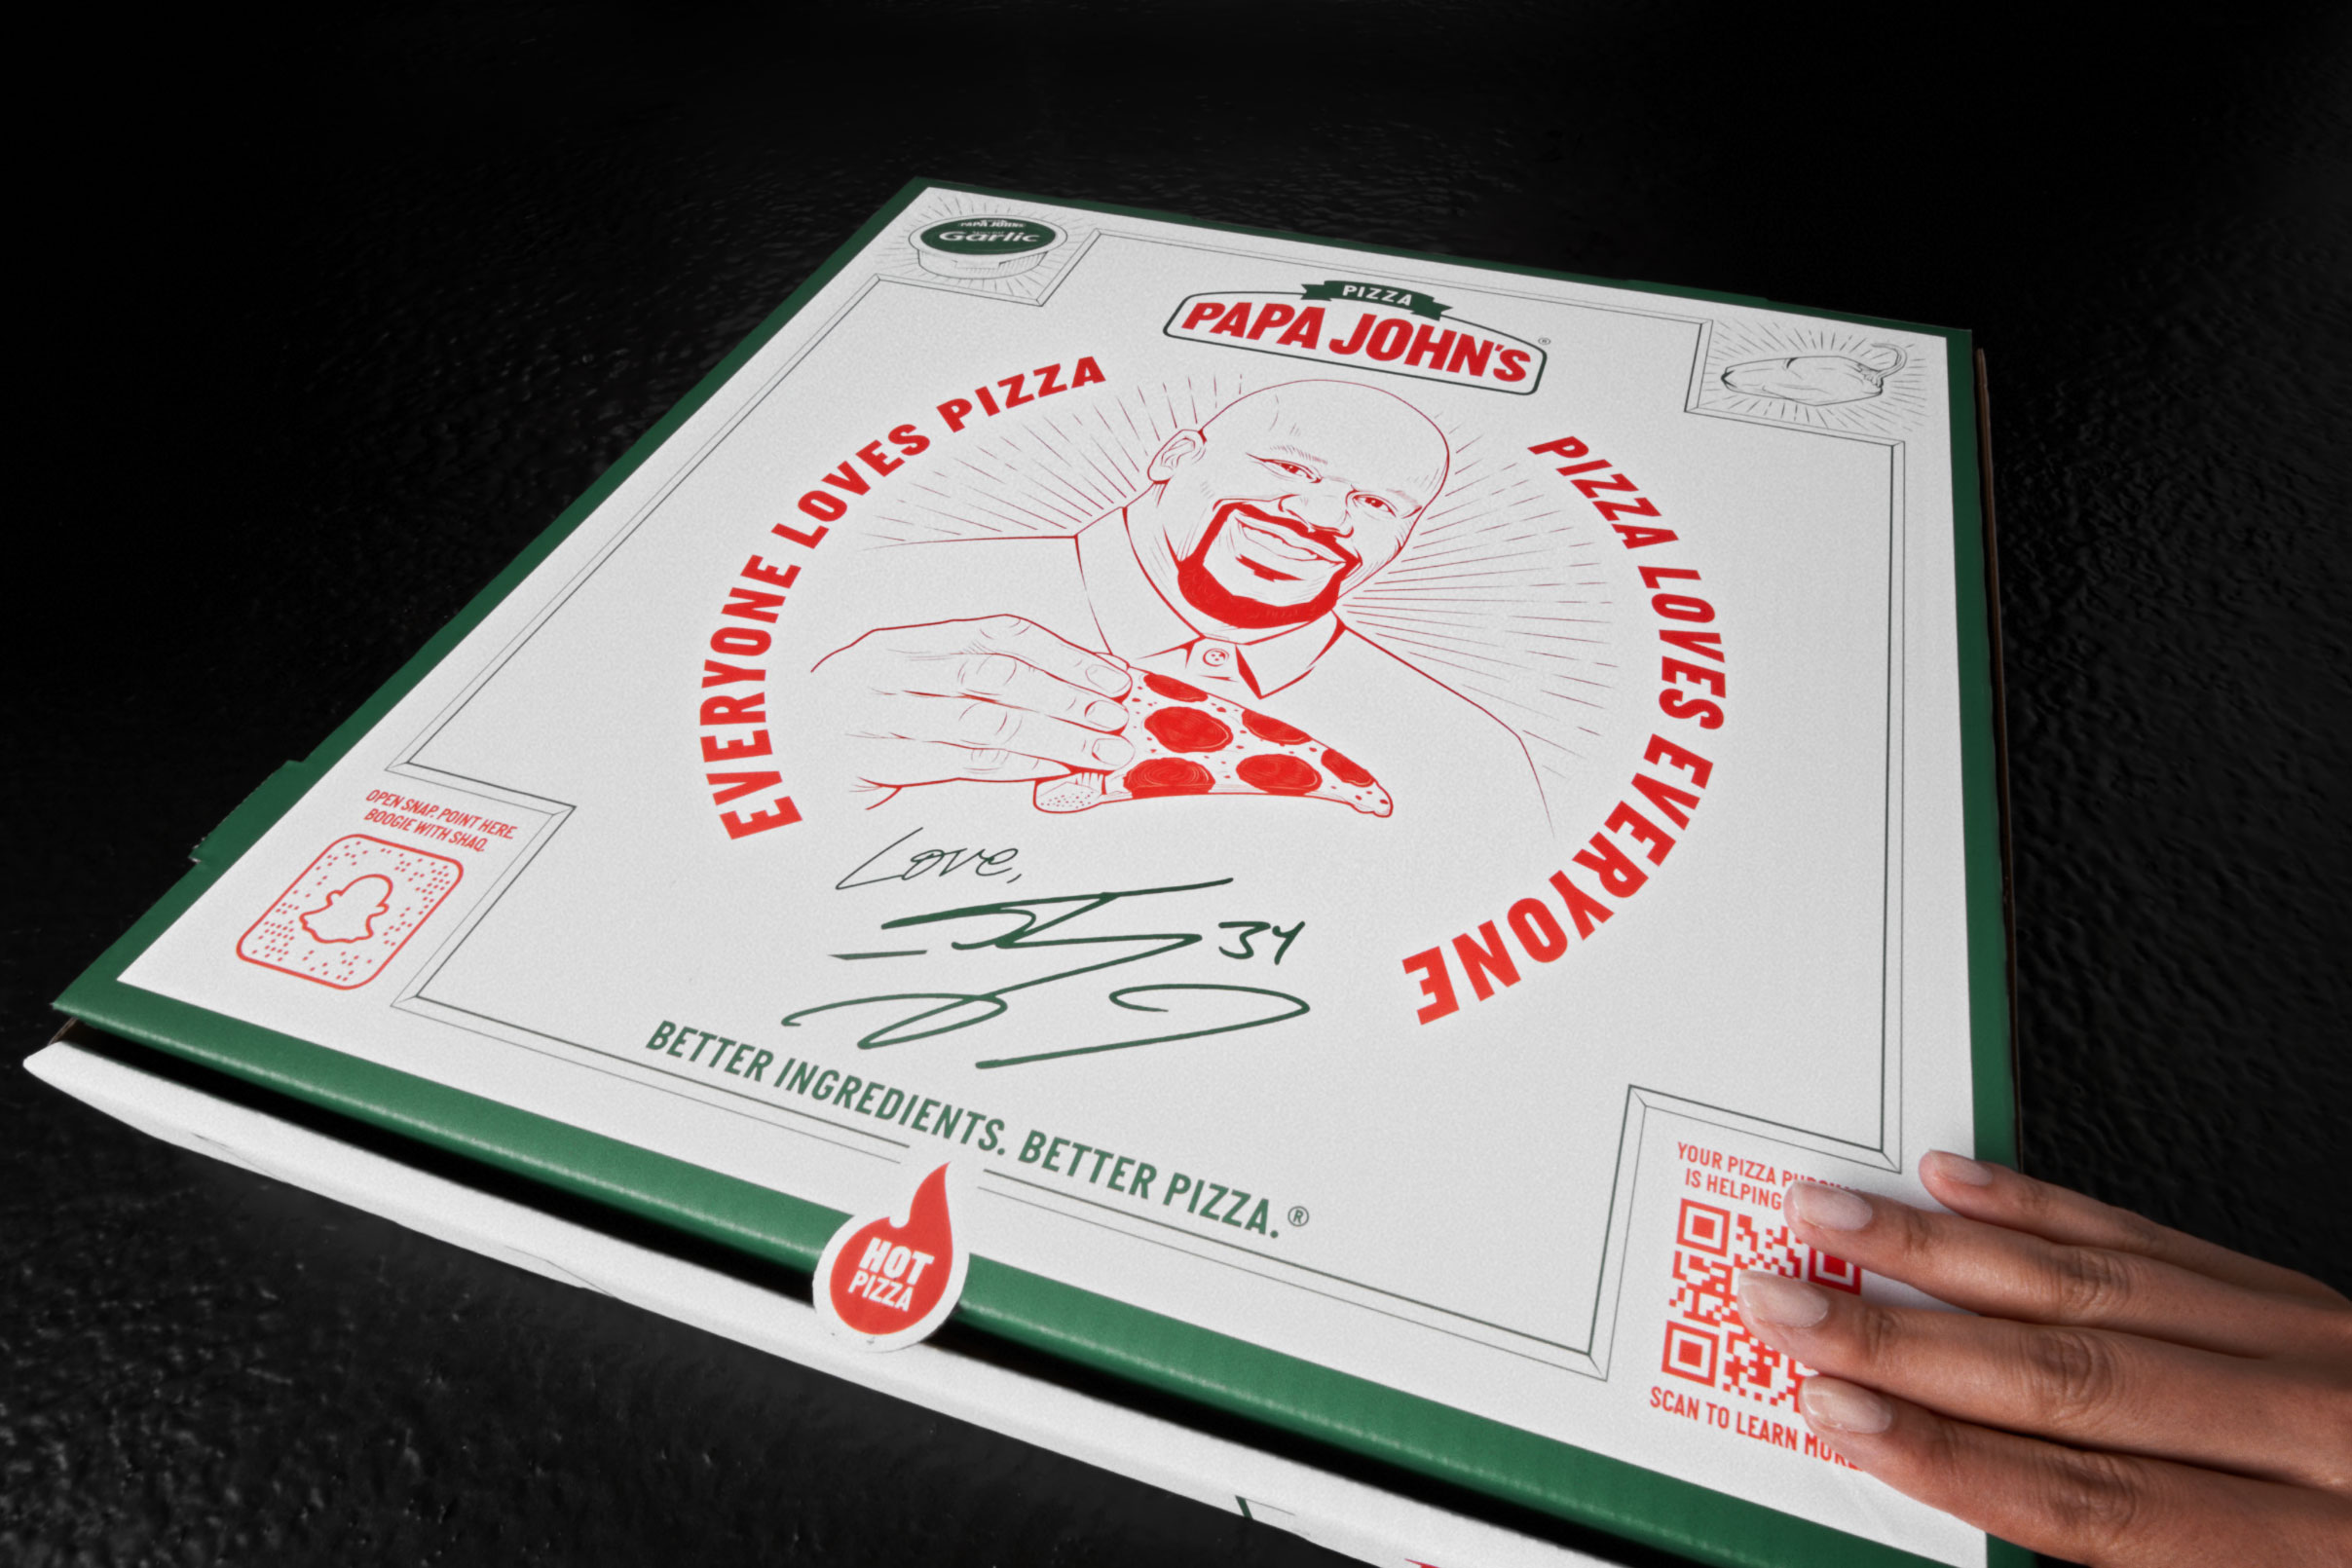 Papa John's shows off Shaq's XL pizza in a charitable campaign